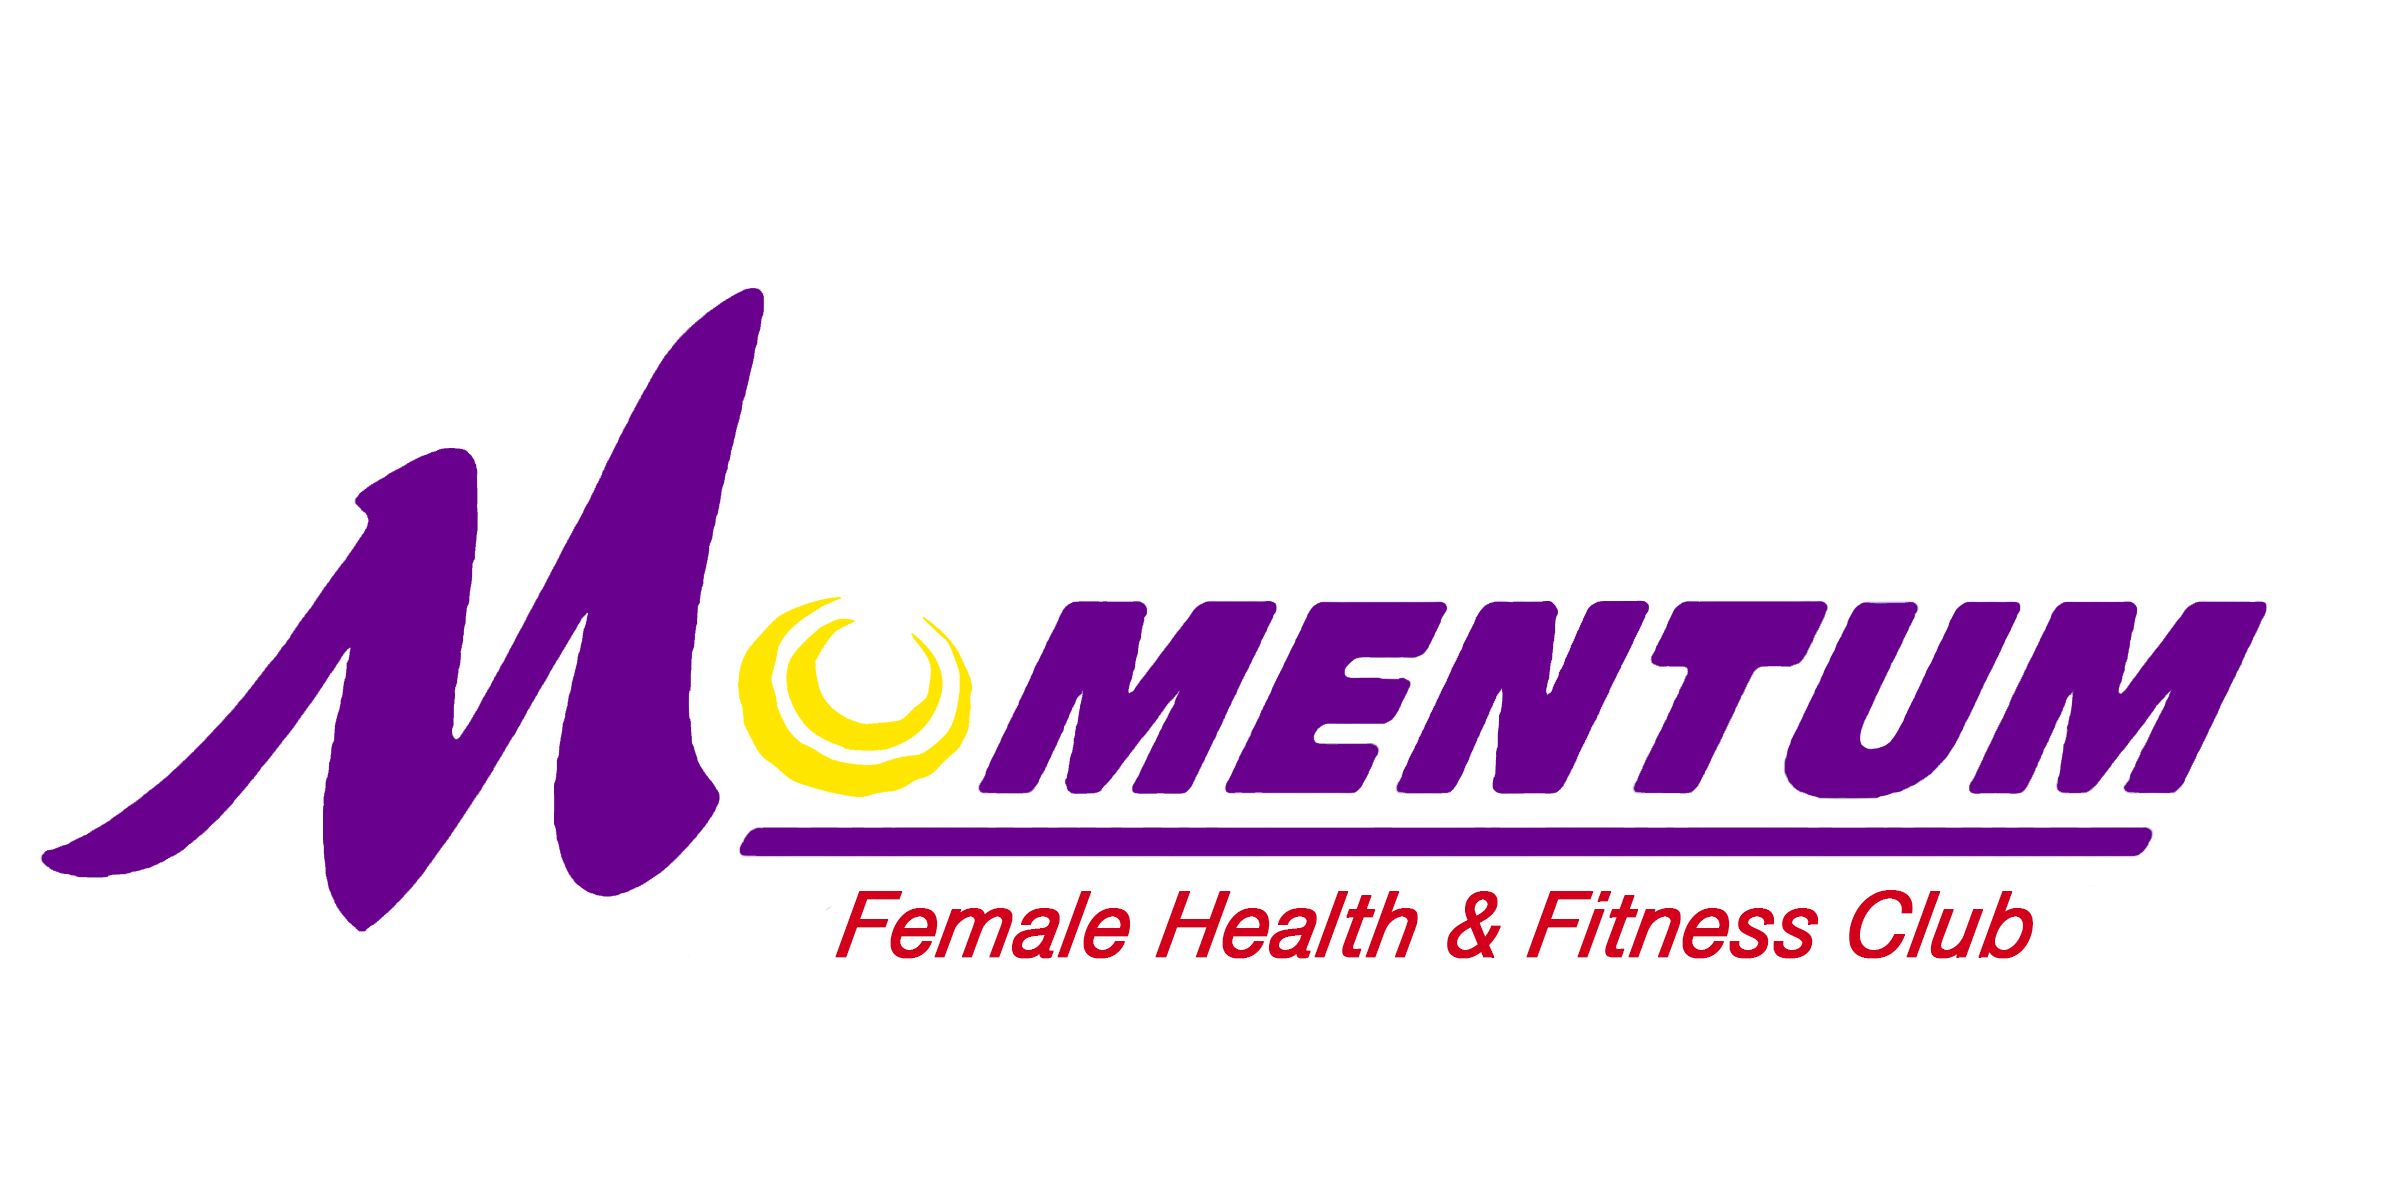 Press Release: Momentum Female Health and Fitness Club Holds 18th Birthday Celebration